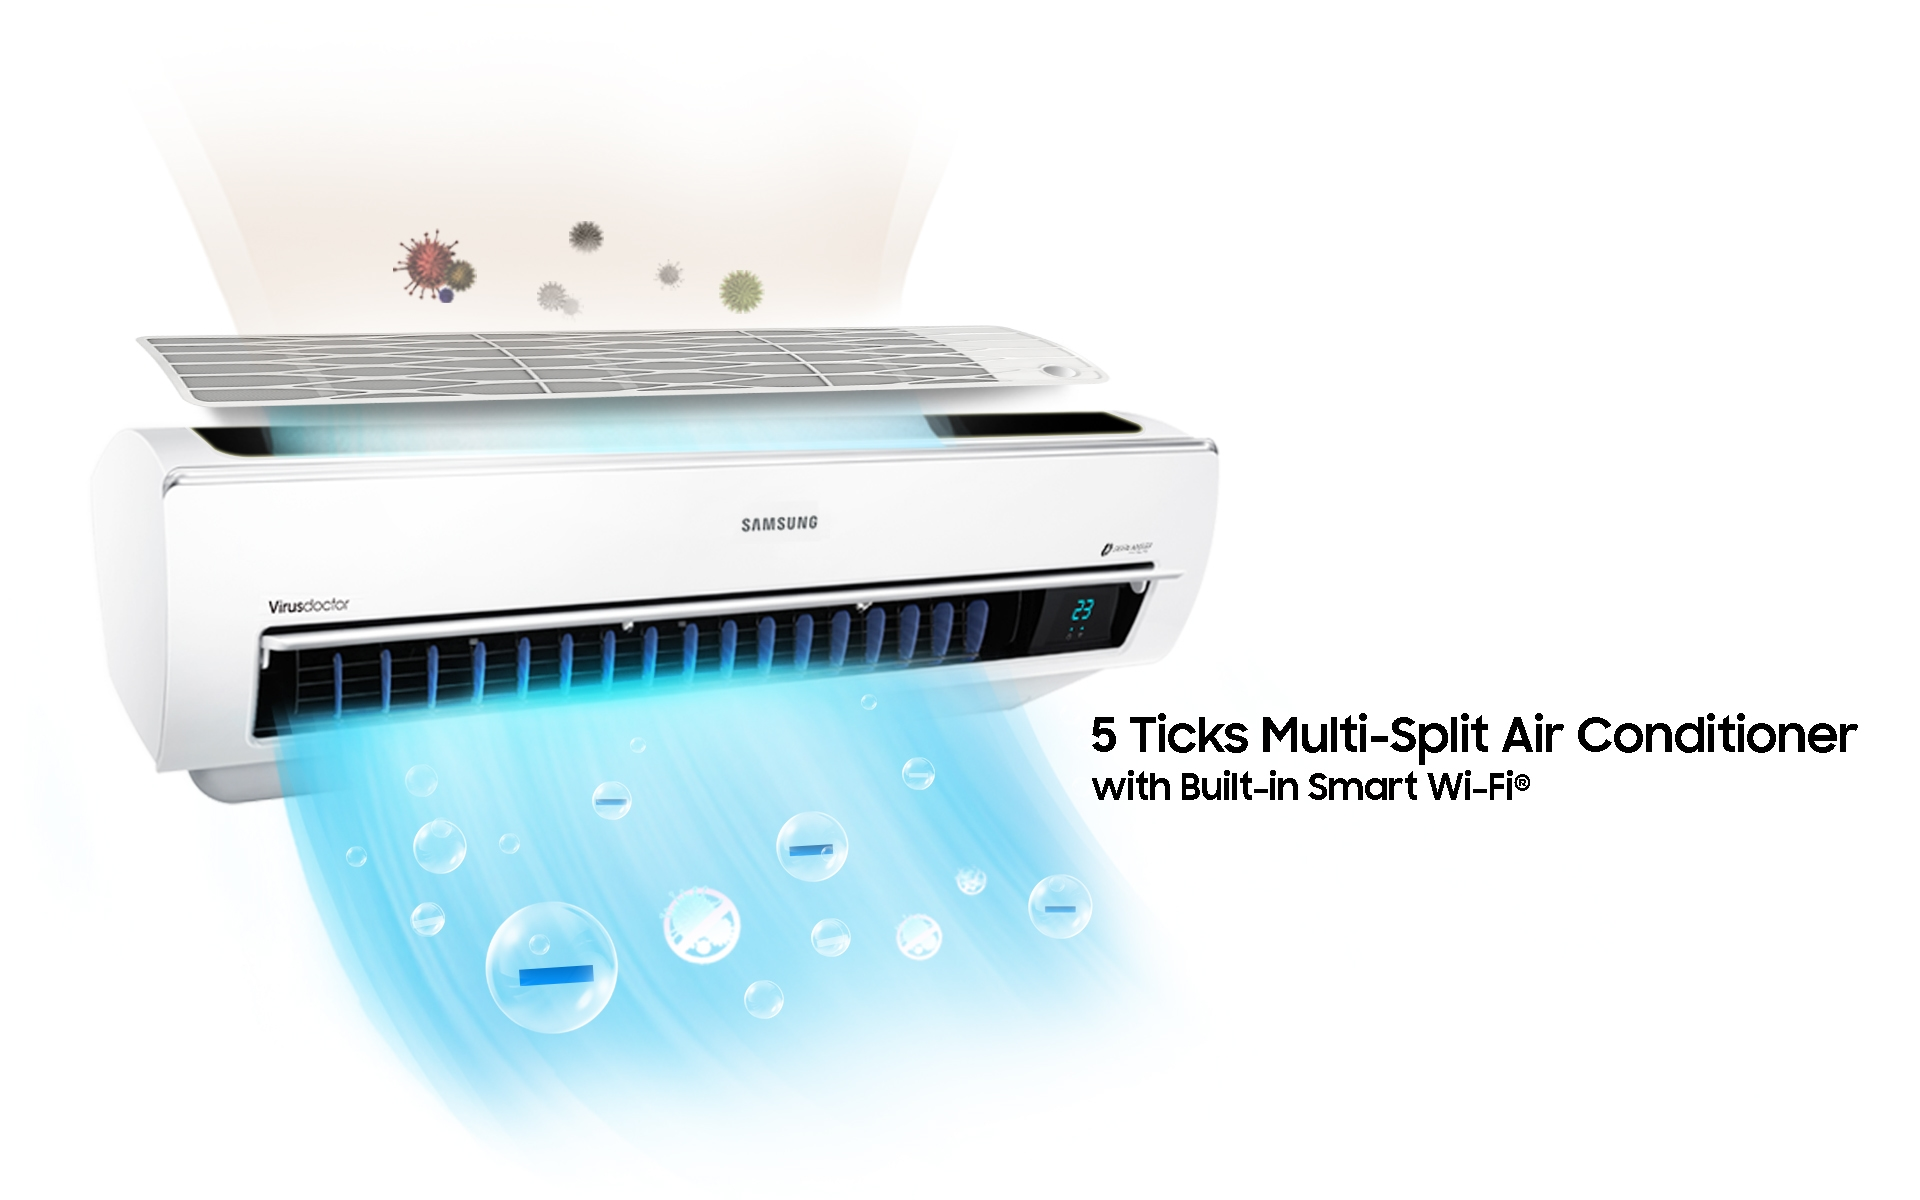 5 Ticks Multi-Split Air Conditioner with Built-in Wi-Fi